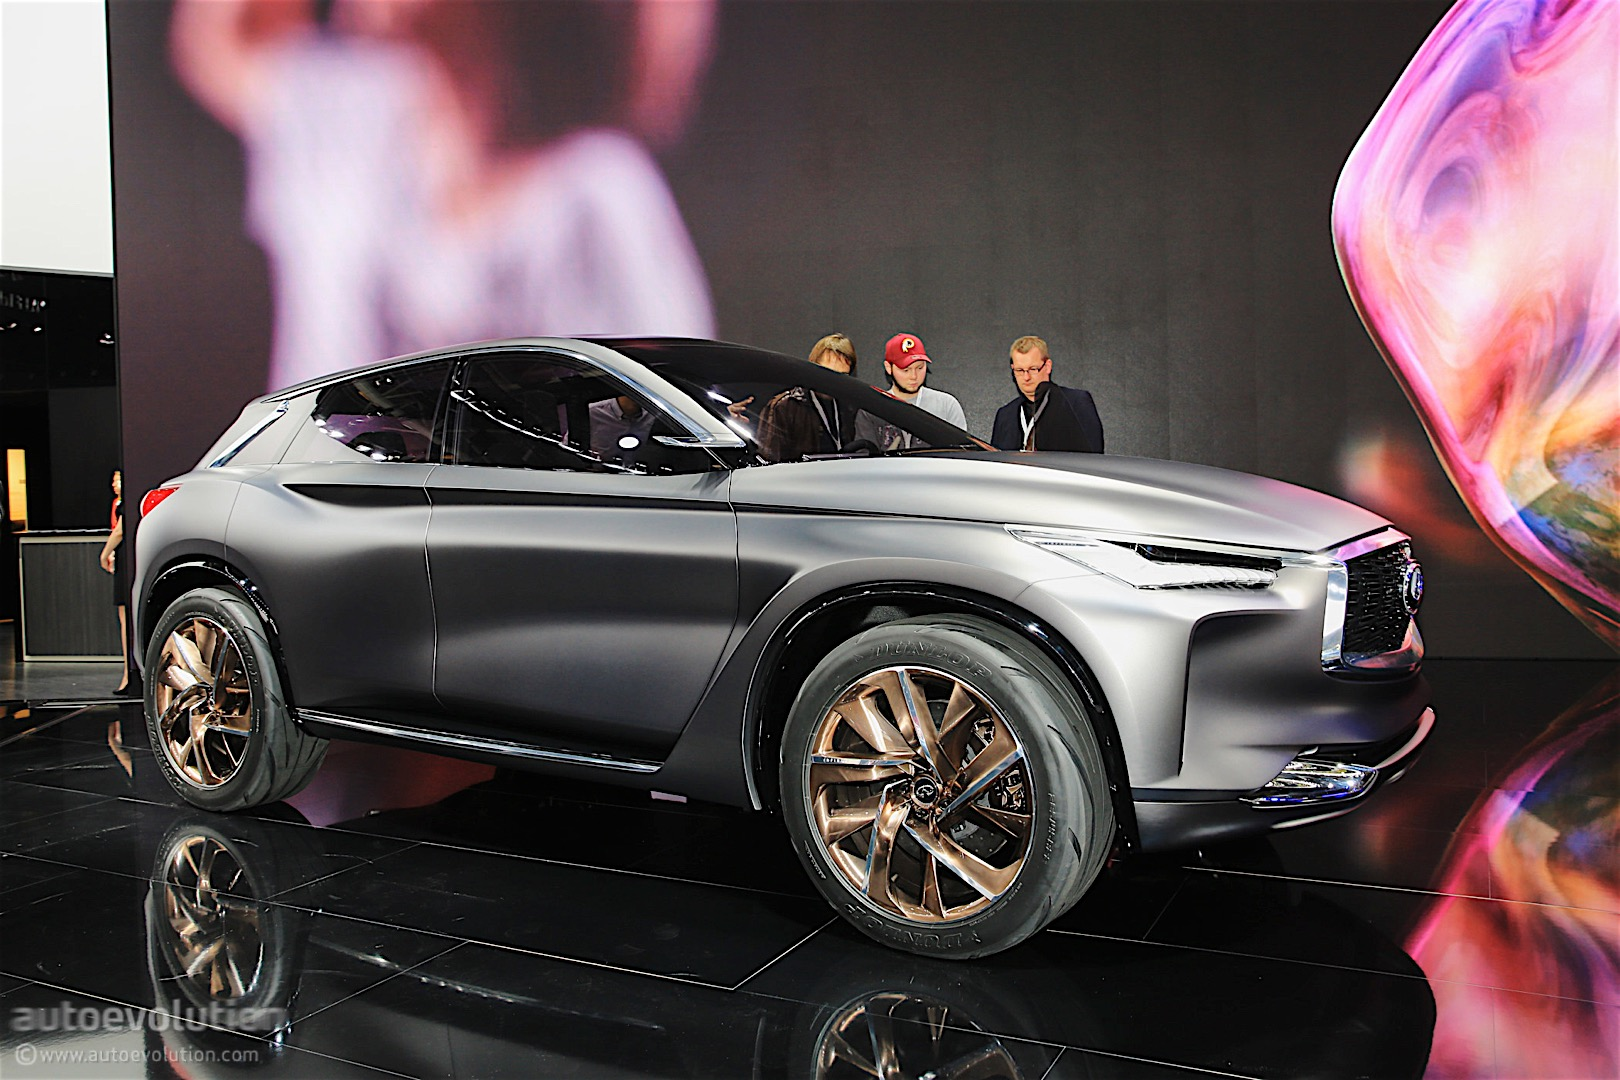 infiniti qx sport inspiration concept shows ideas for brand 39 s next midsize suv autoevolution. Black Bedroom Furniture Sets. Home Design Ideas